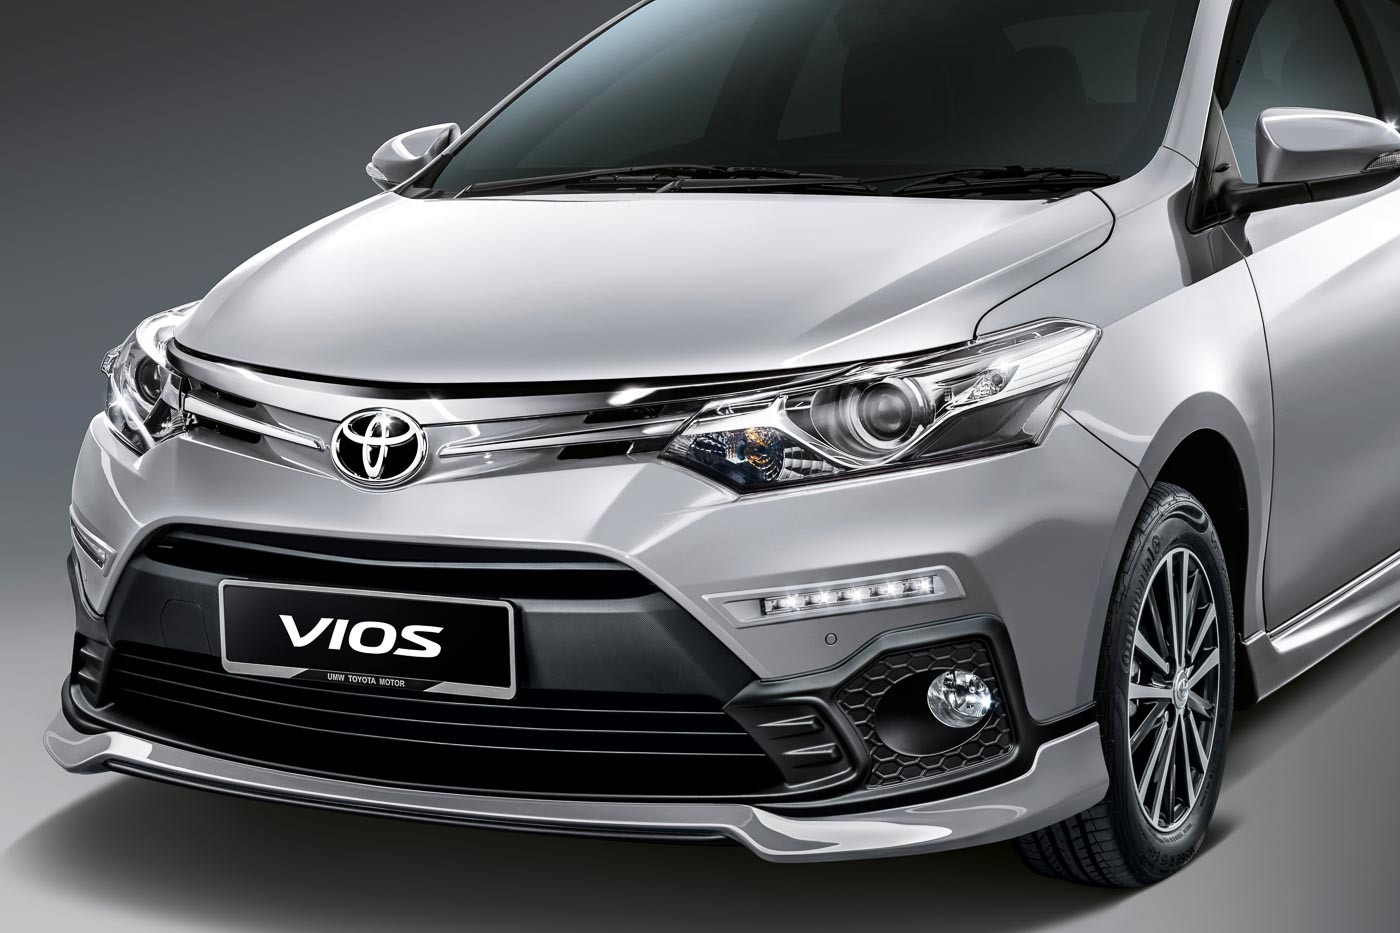 new agya trd 2019 harga mobil grand avanza 2015 toyota vios updated for 2018 priced from rm75k bookings